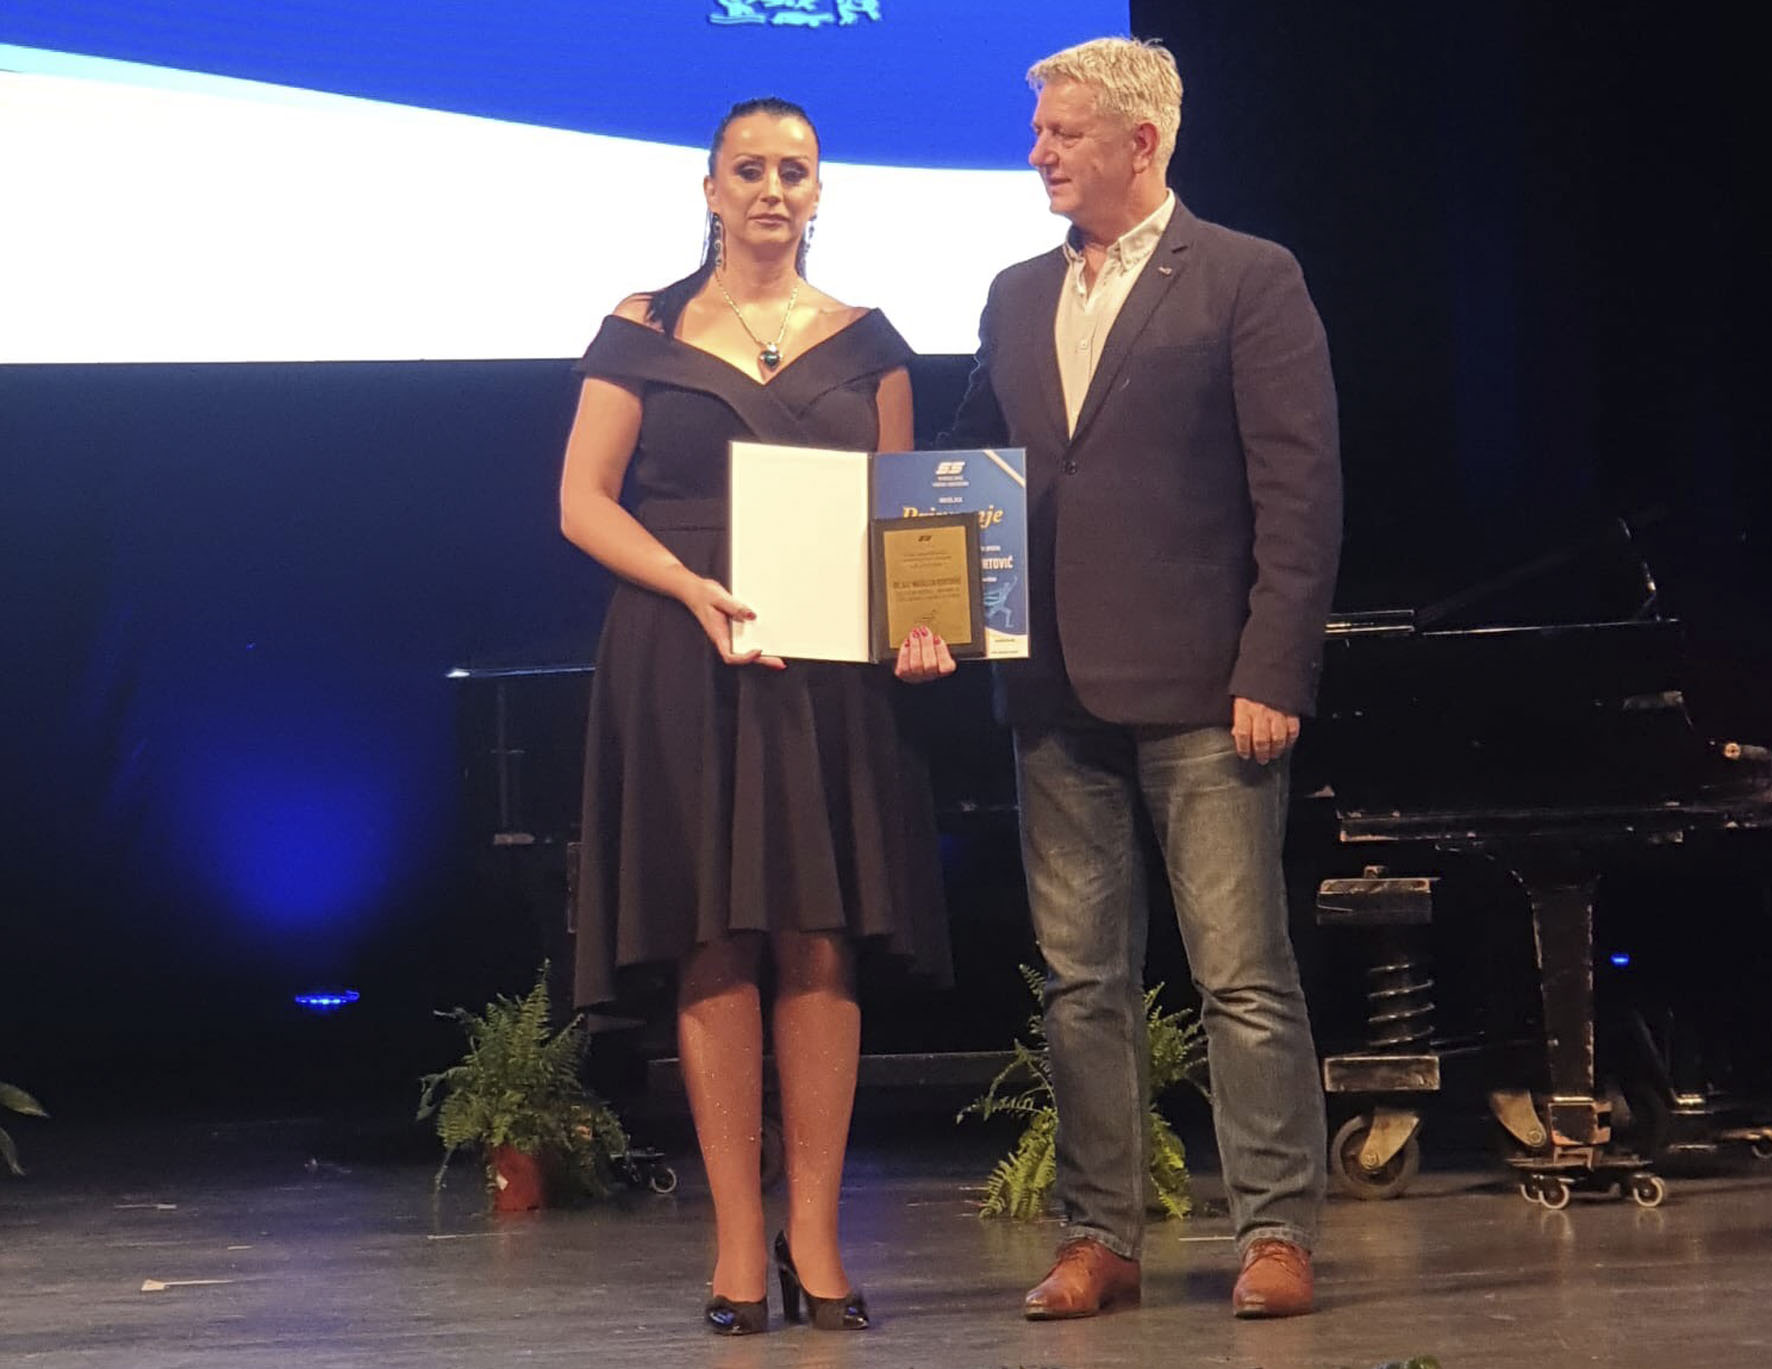 Assistant professor Natalija Kurtović, winner of the Special Recognition of the Sports Federation of B&H